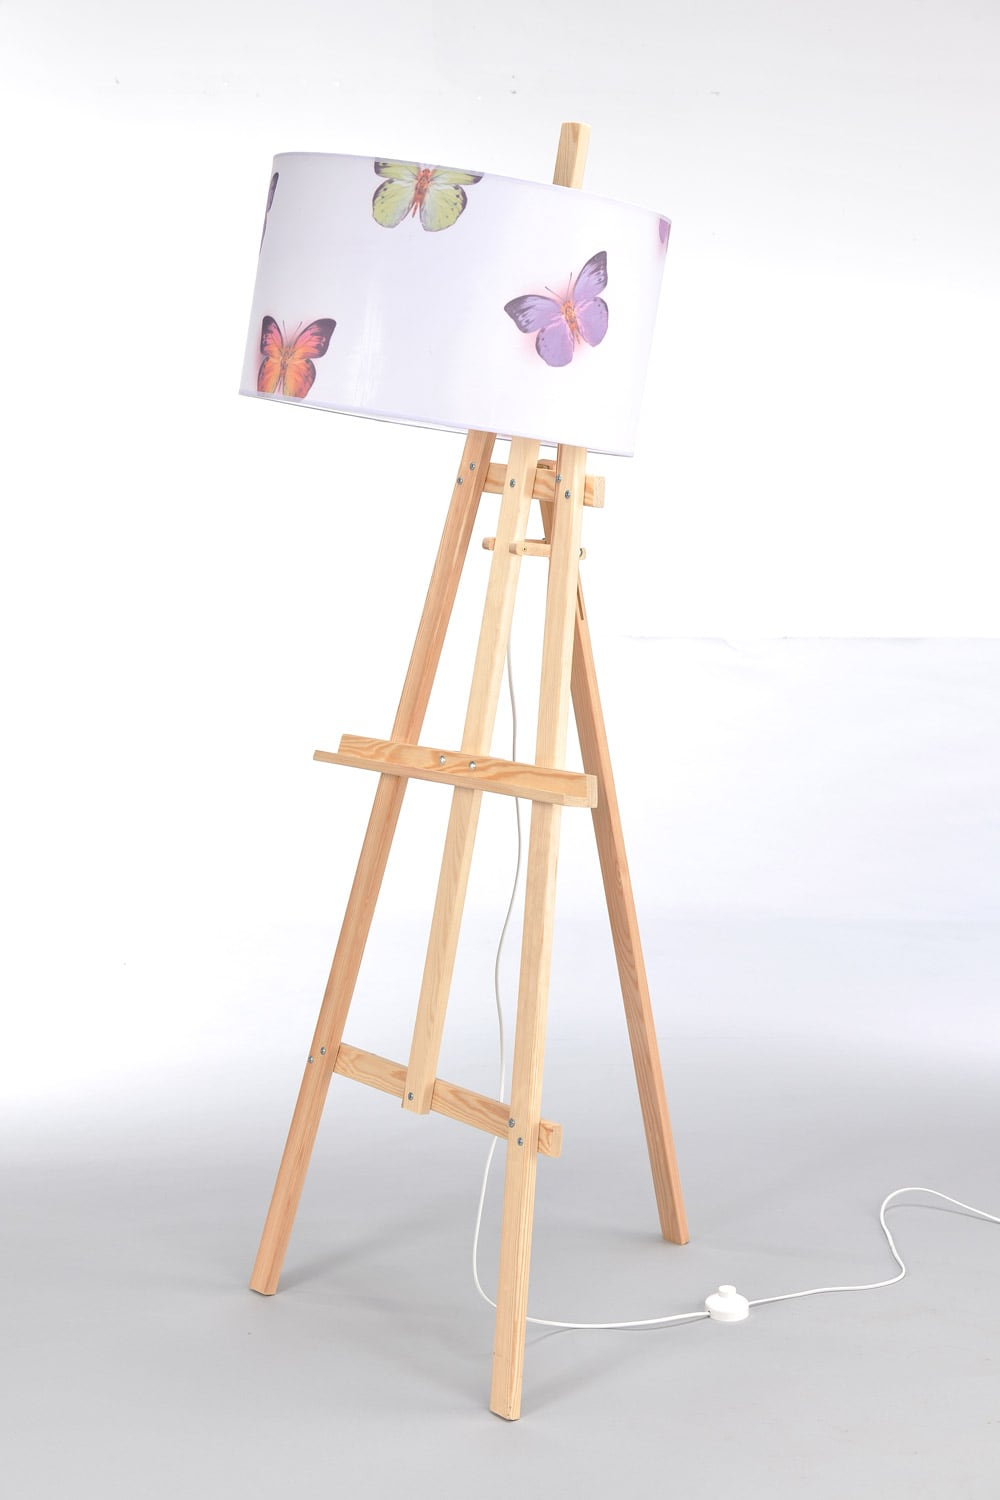 Standing Wood Lamp easel No. 2479